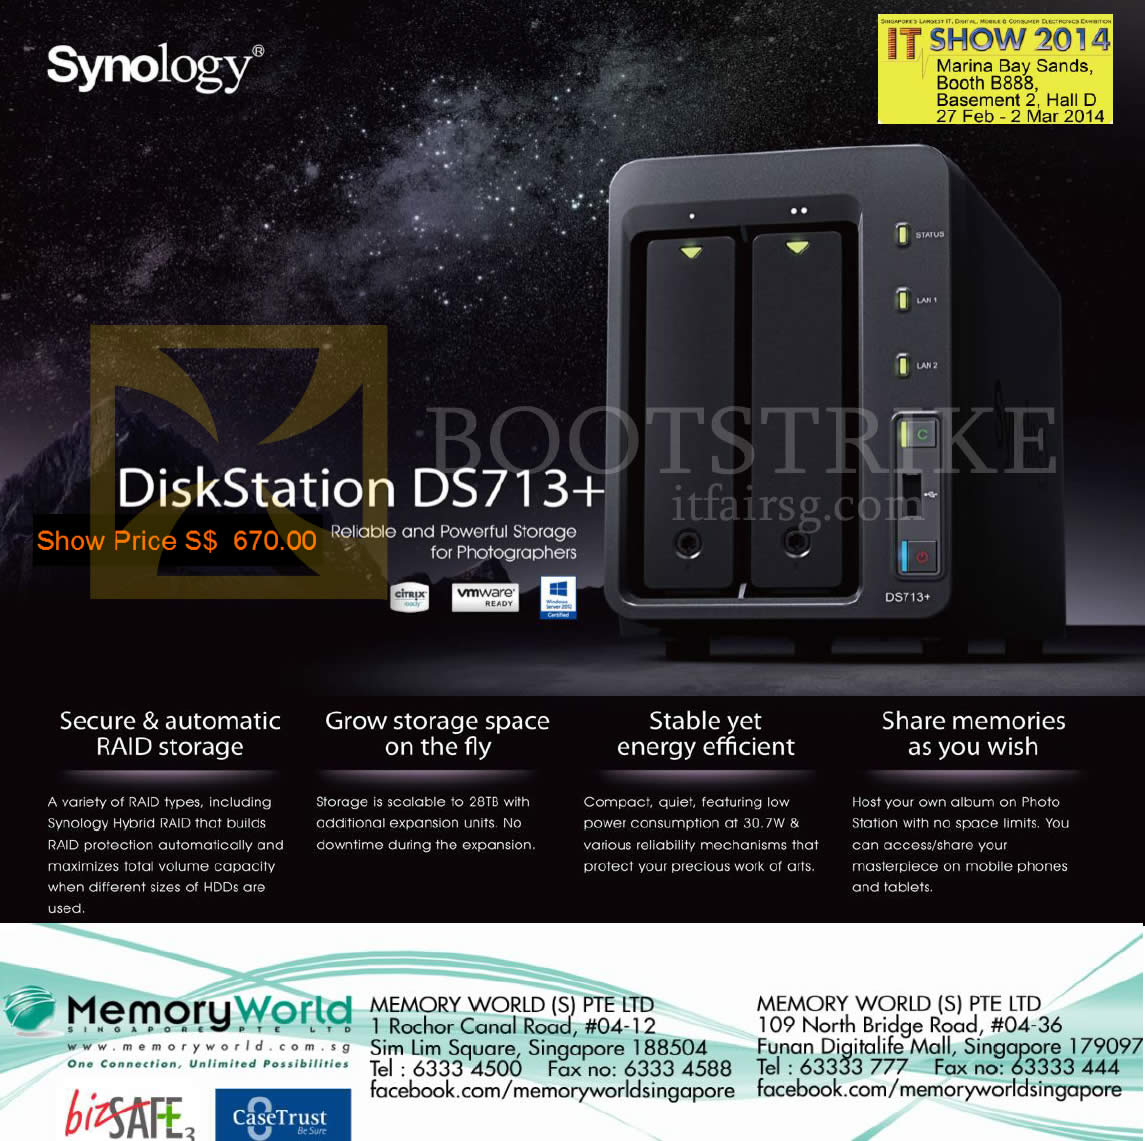 IT SHOW 2014 price list image brochure of Memory World NAS Synology DiskStation DS713 Plus